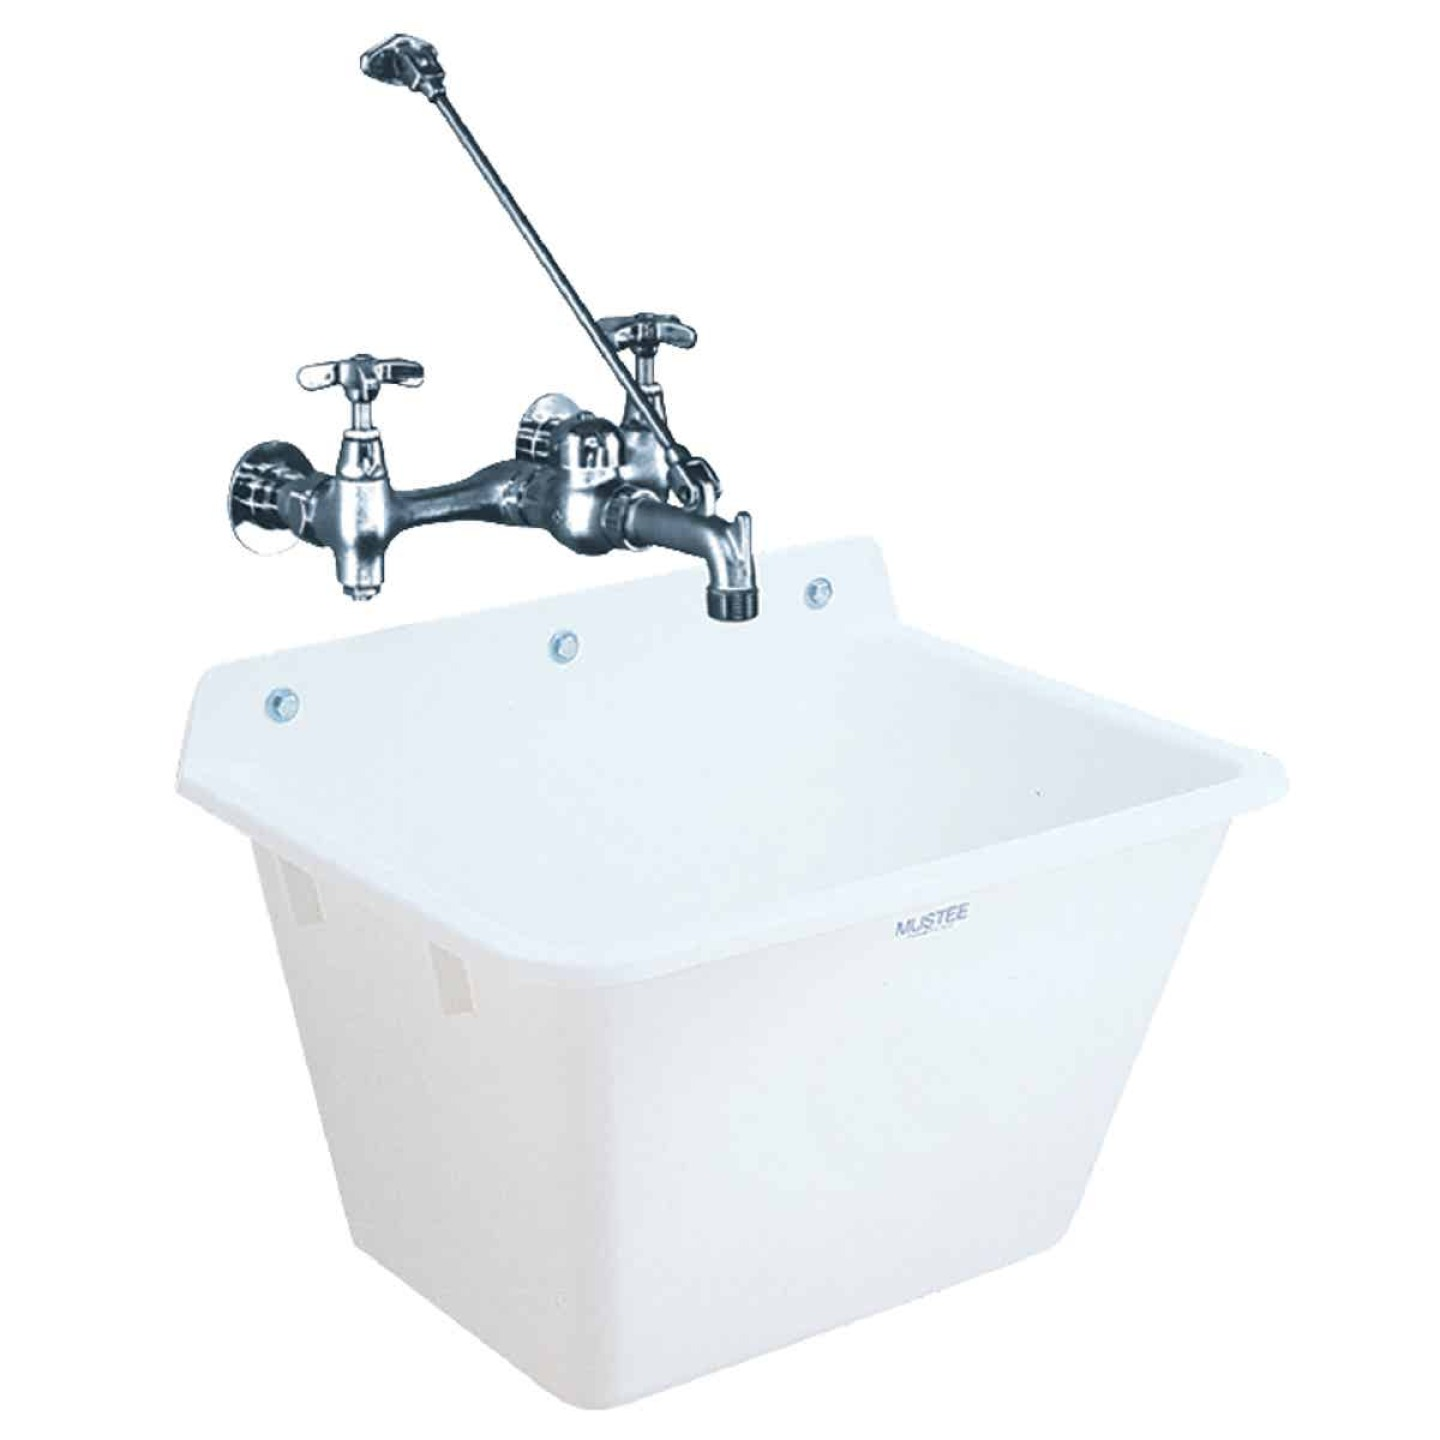 Mustee 12 Gallon 17 In. x 22 In. Wall Mount Utility Tub ( Faucet Not Included) Image 1